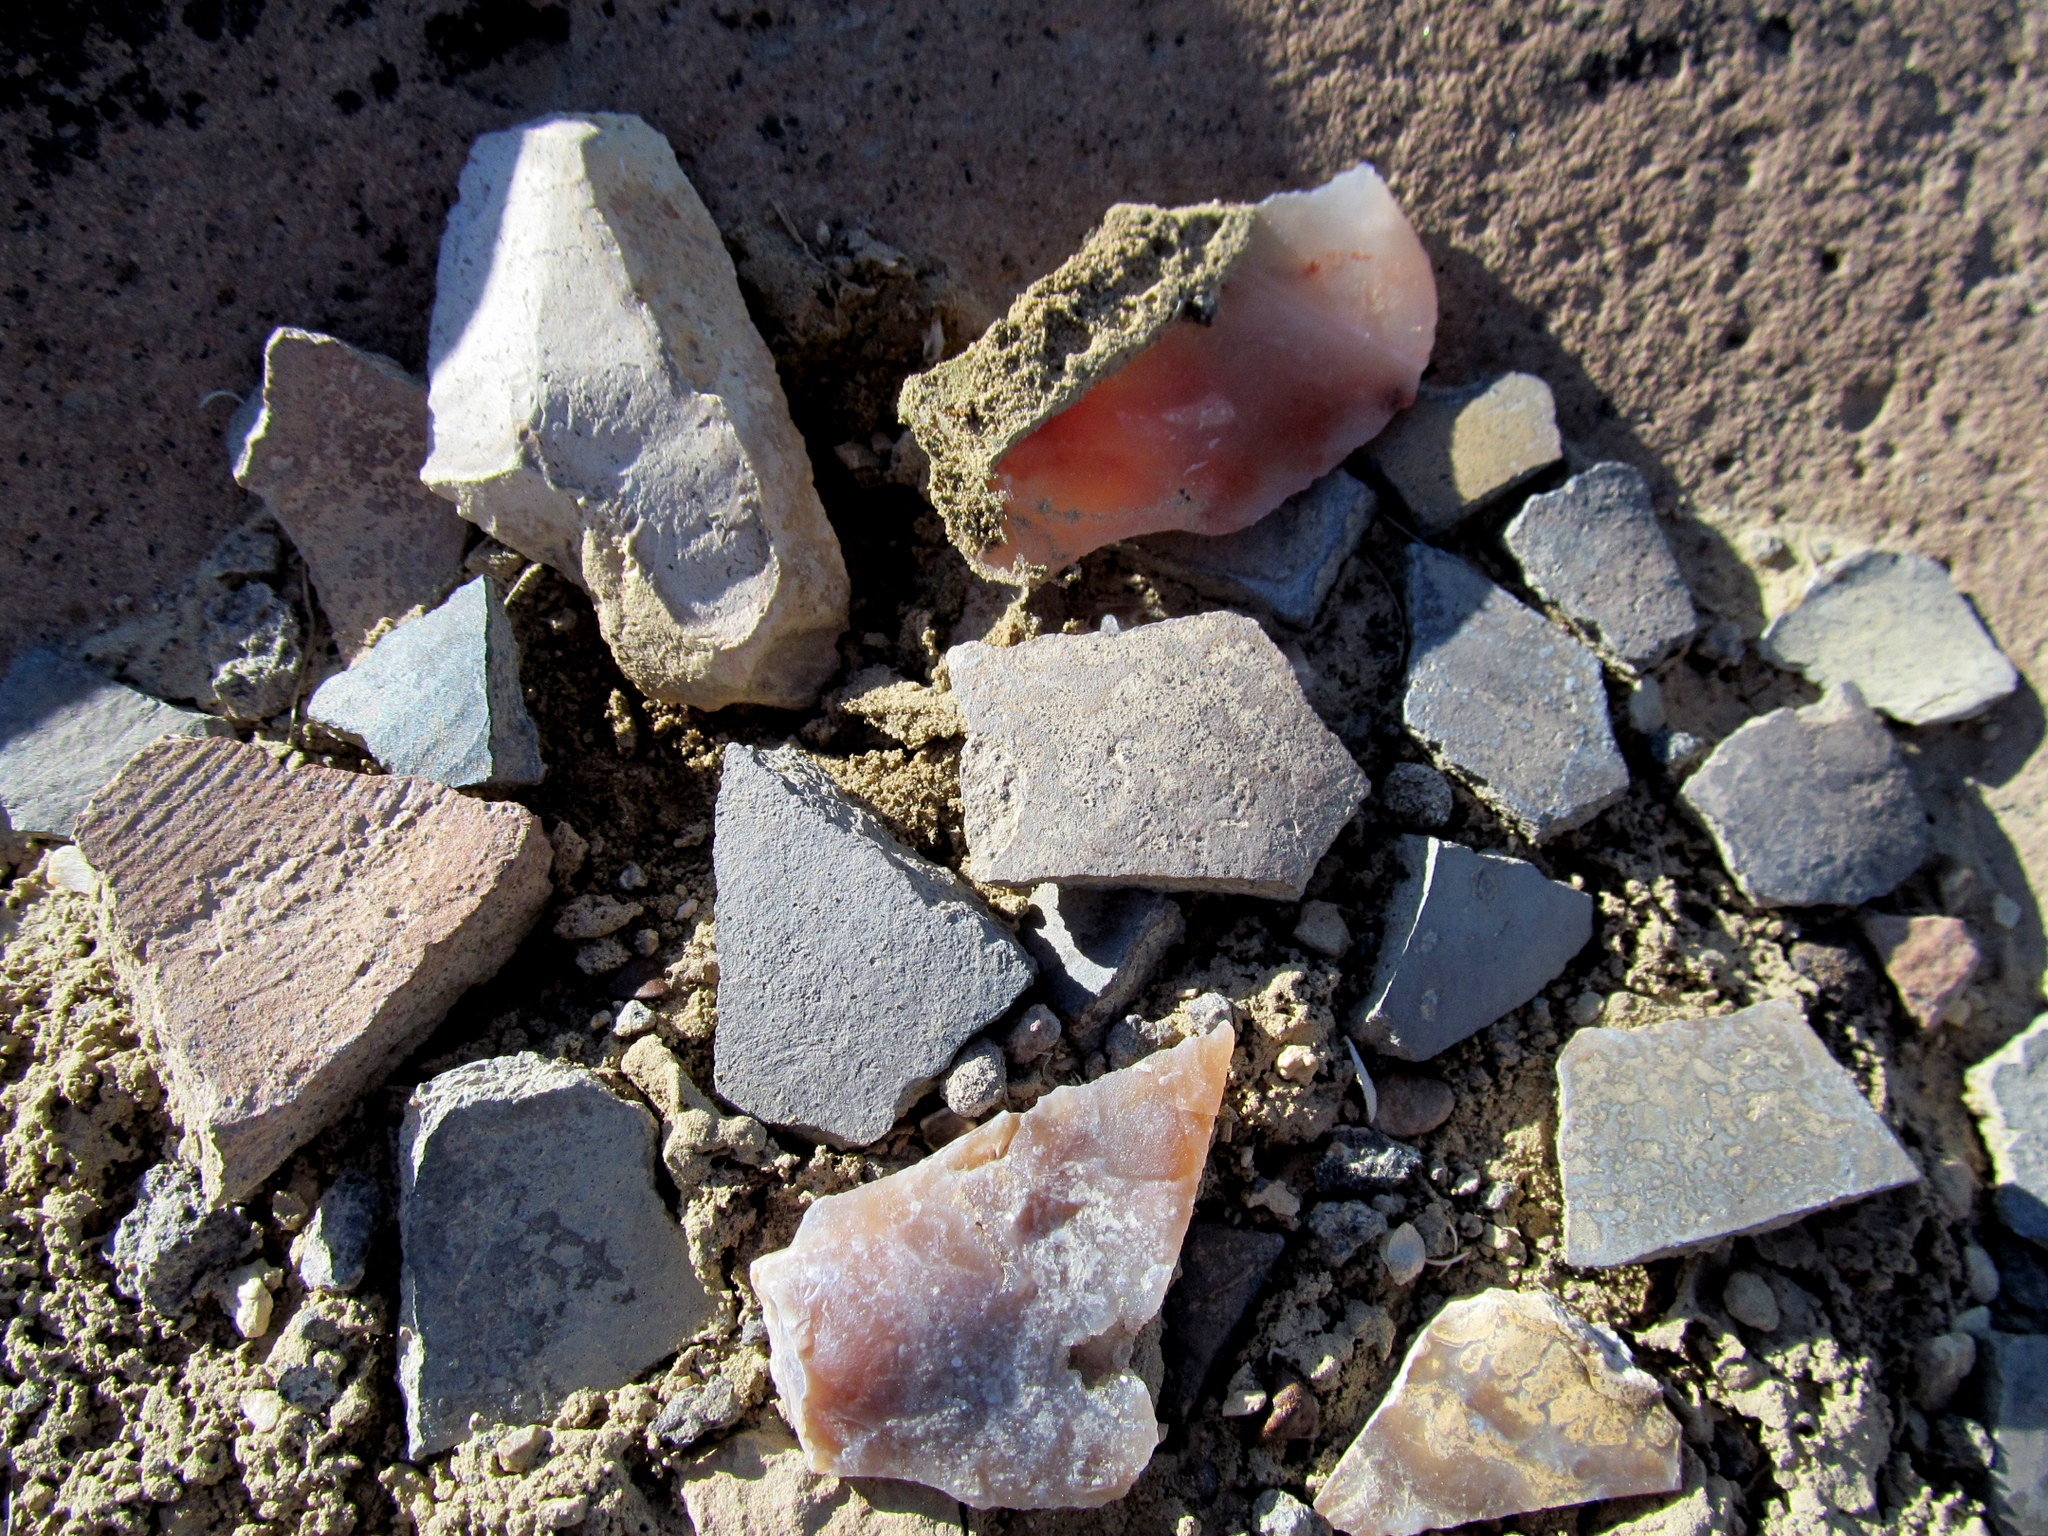 Photo: Potsherds and lithic flakes